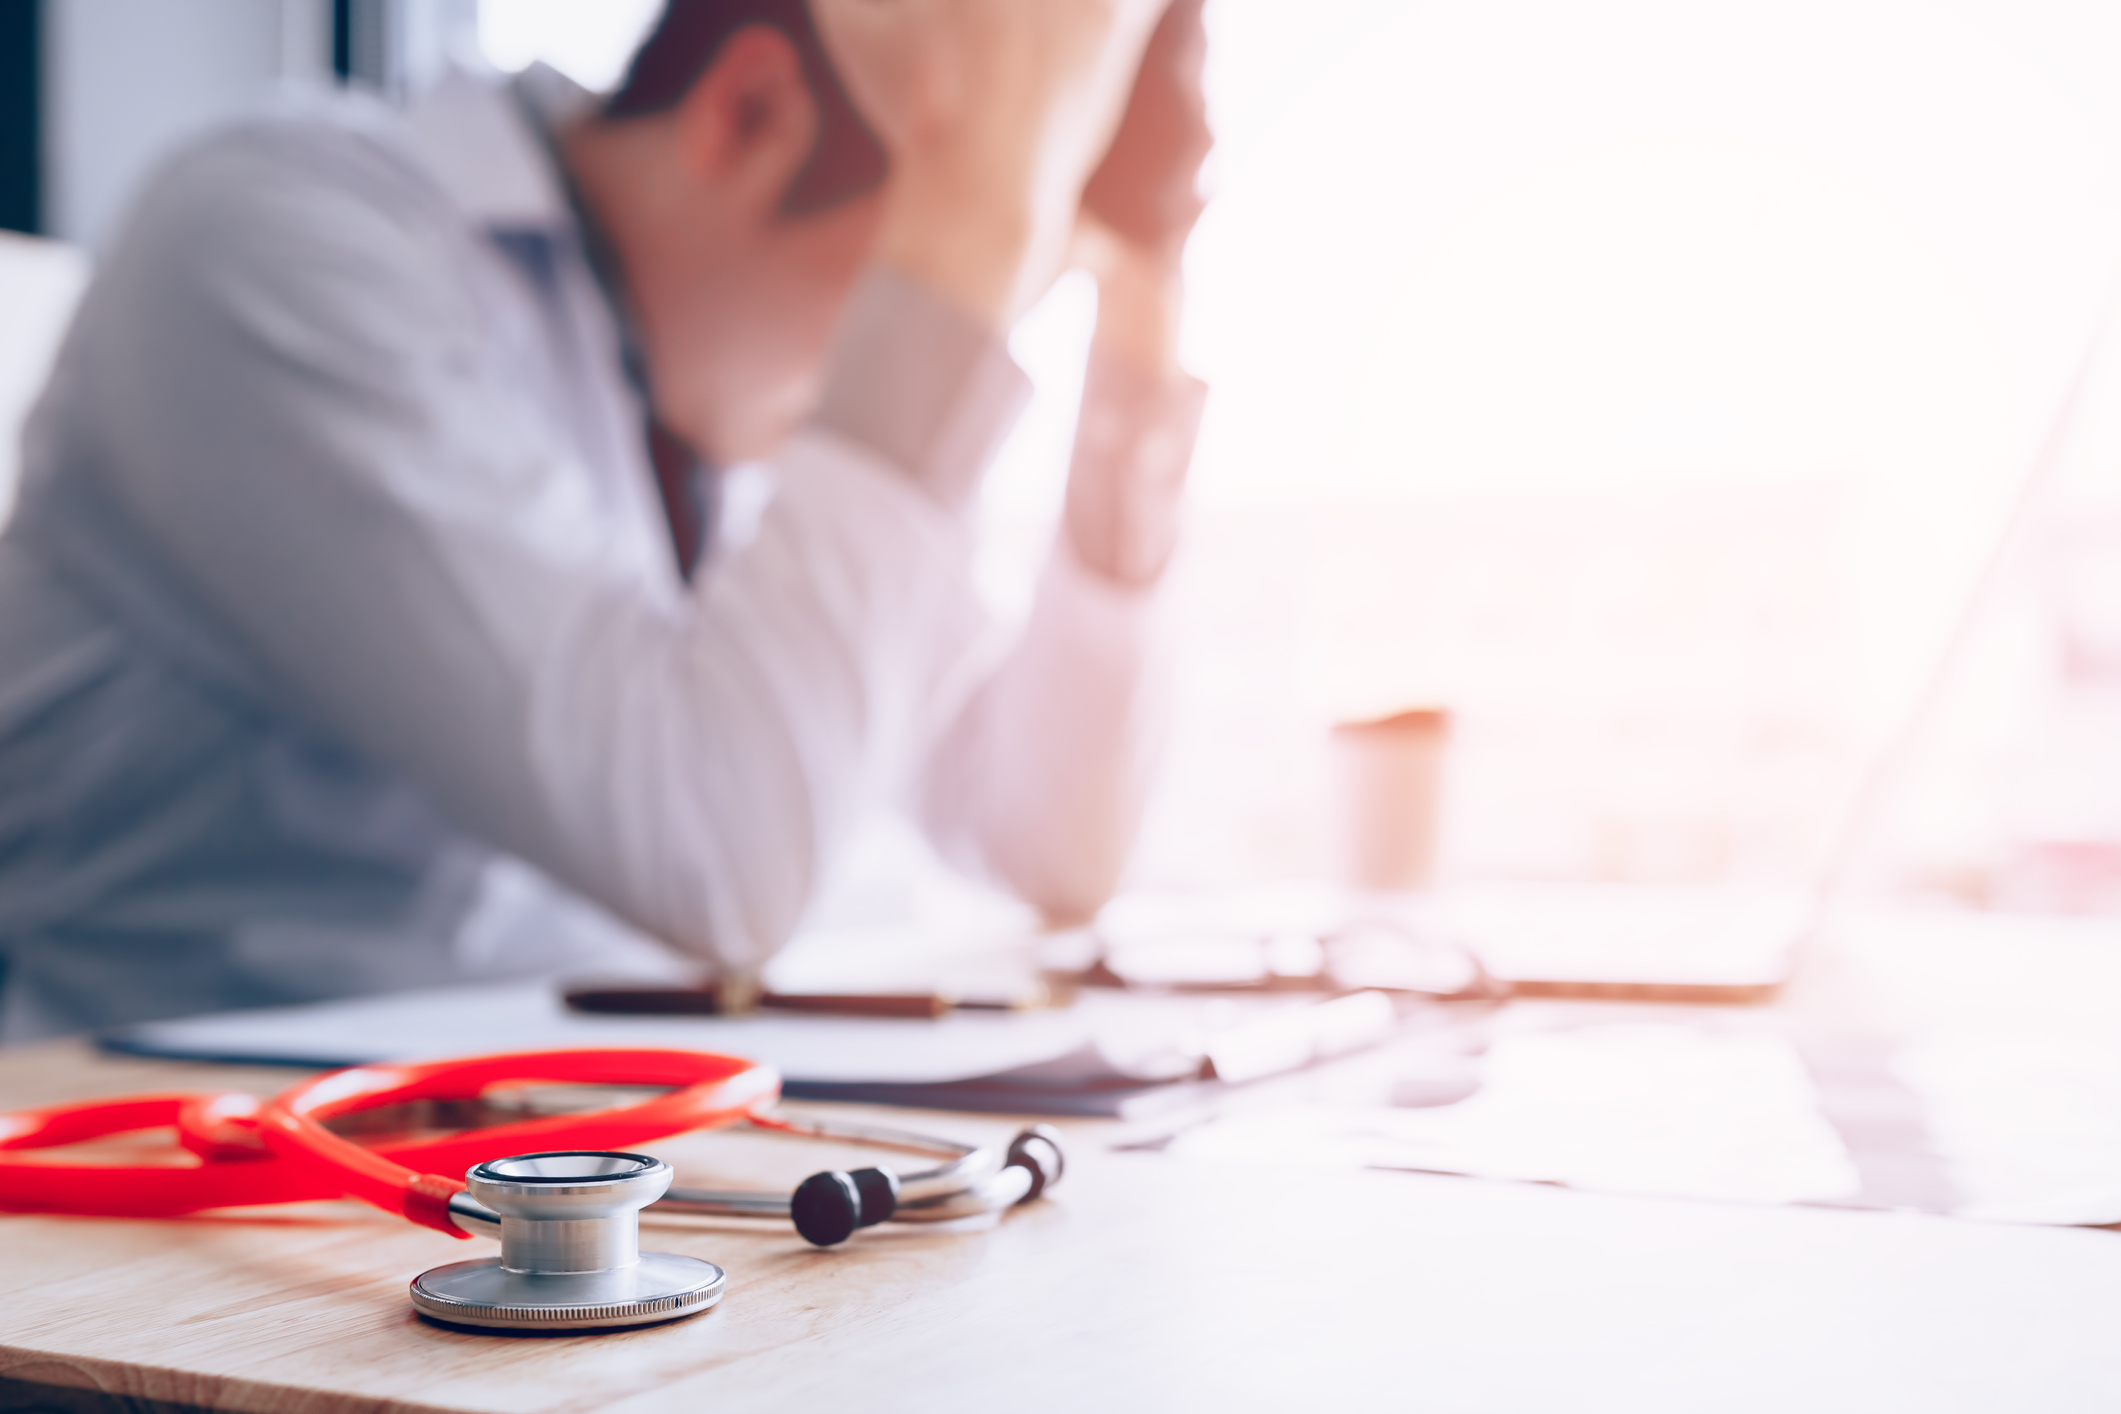 Blurred shot of a tired young male doctor exhausted with his head in his hands